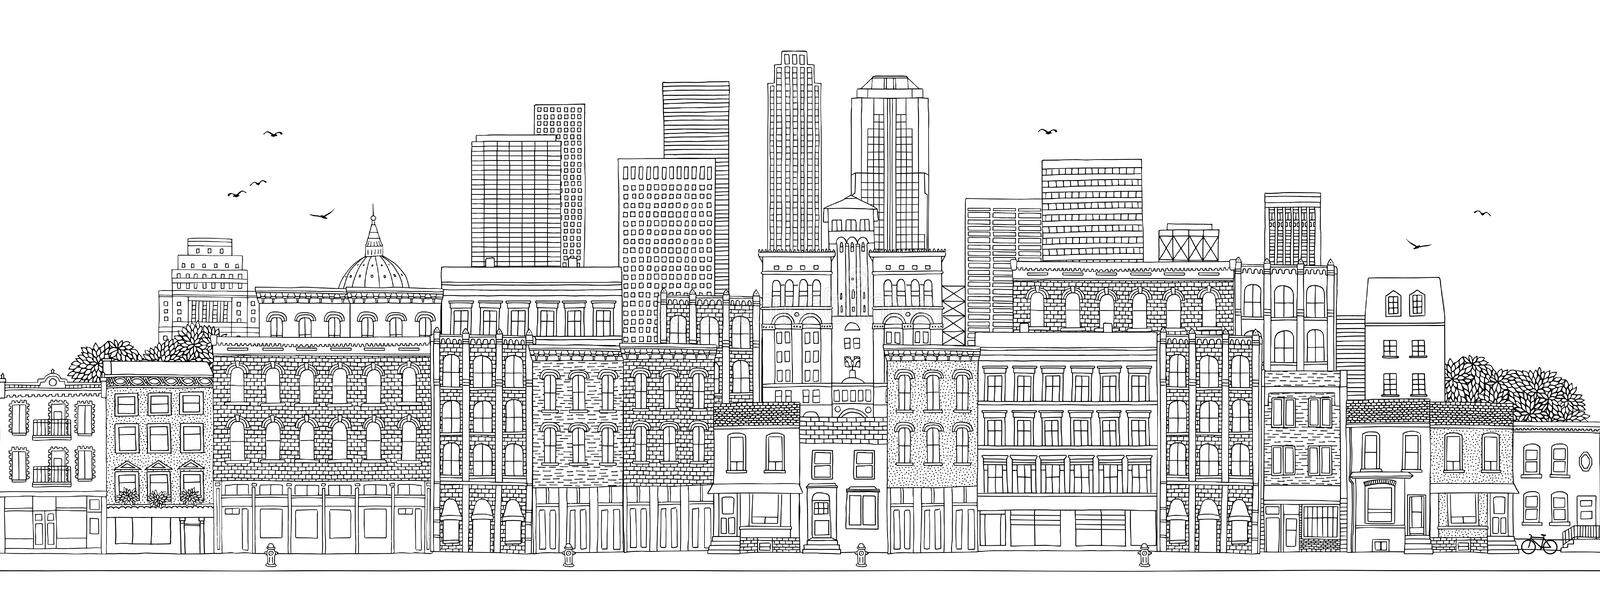 Big city skyline with hand drawn buildings vector illustration